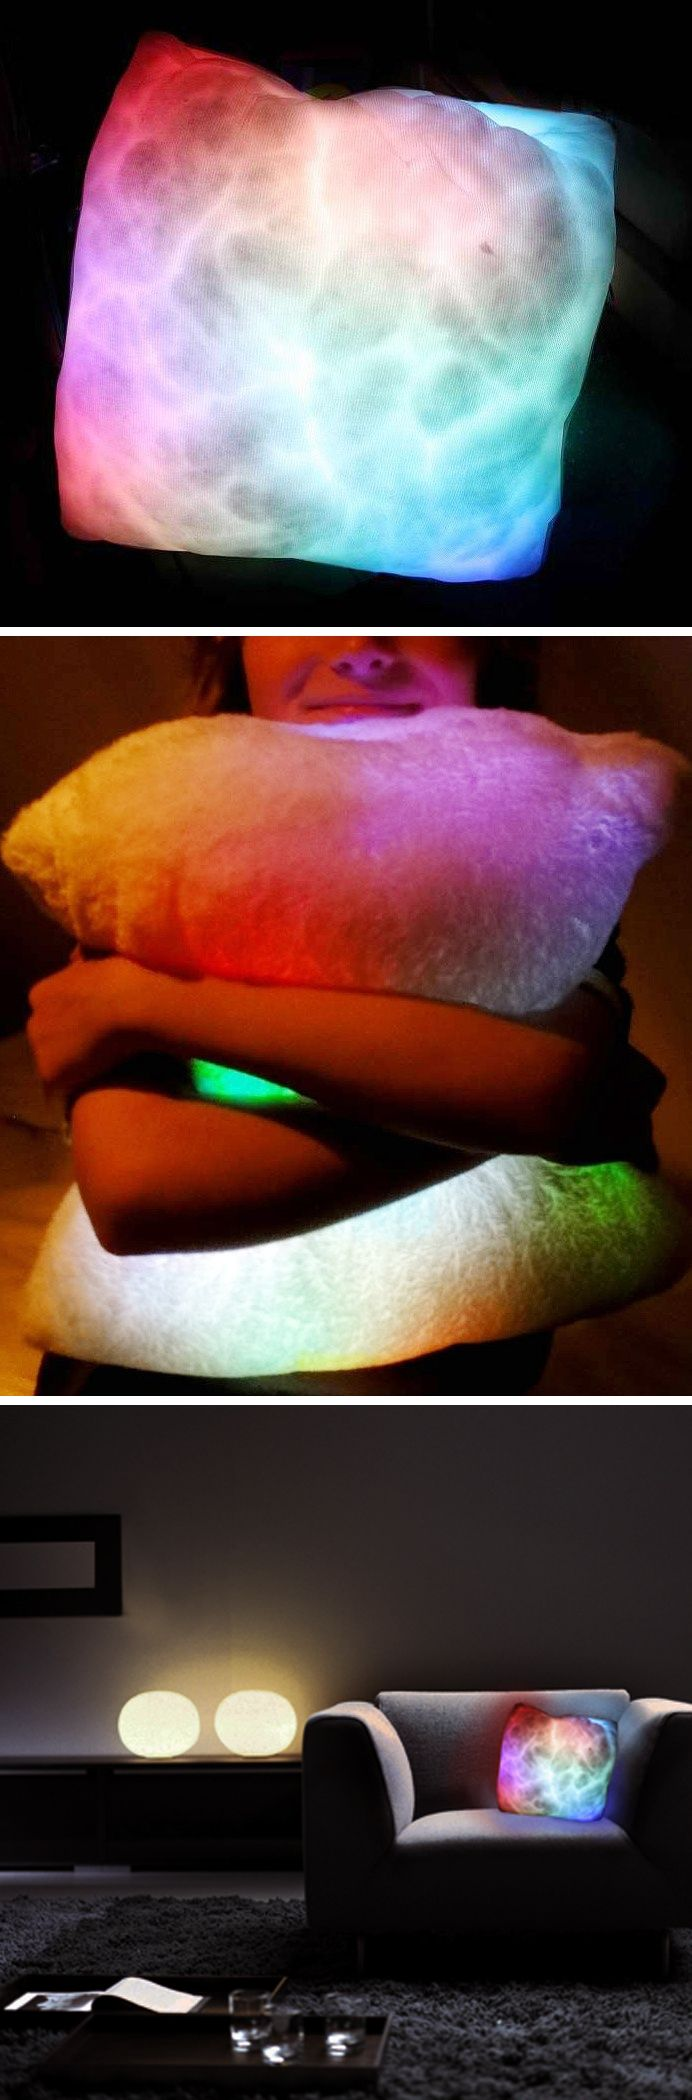 Moon Light Pillow // creates a trippy ambience from the internal light source that gently shimmers between various colors!